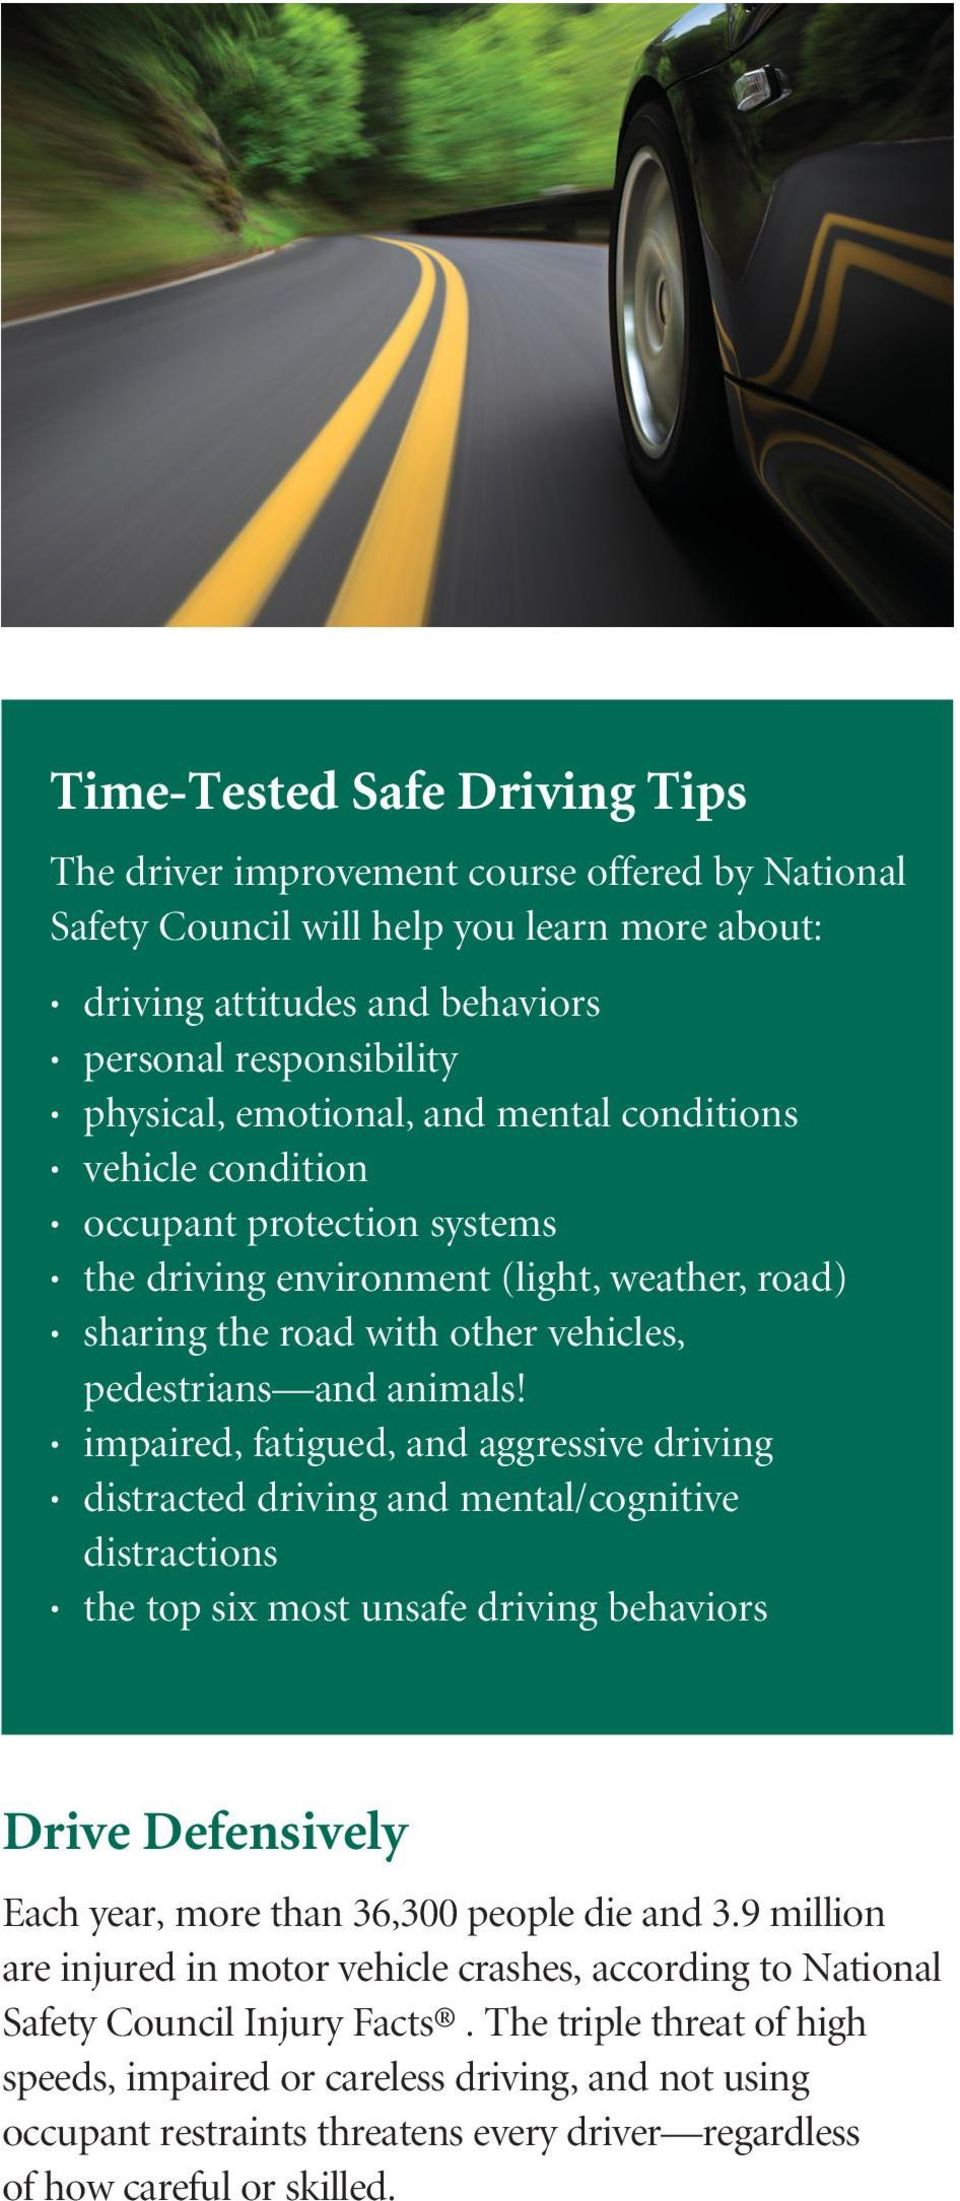 impaired, fatigued, and aggressive driving distracted driving and mental/cognitive distractions the top six most unsafe driving behaviors Drive Defensively Each year, more than 36,300 people die and